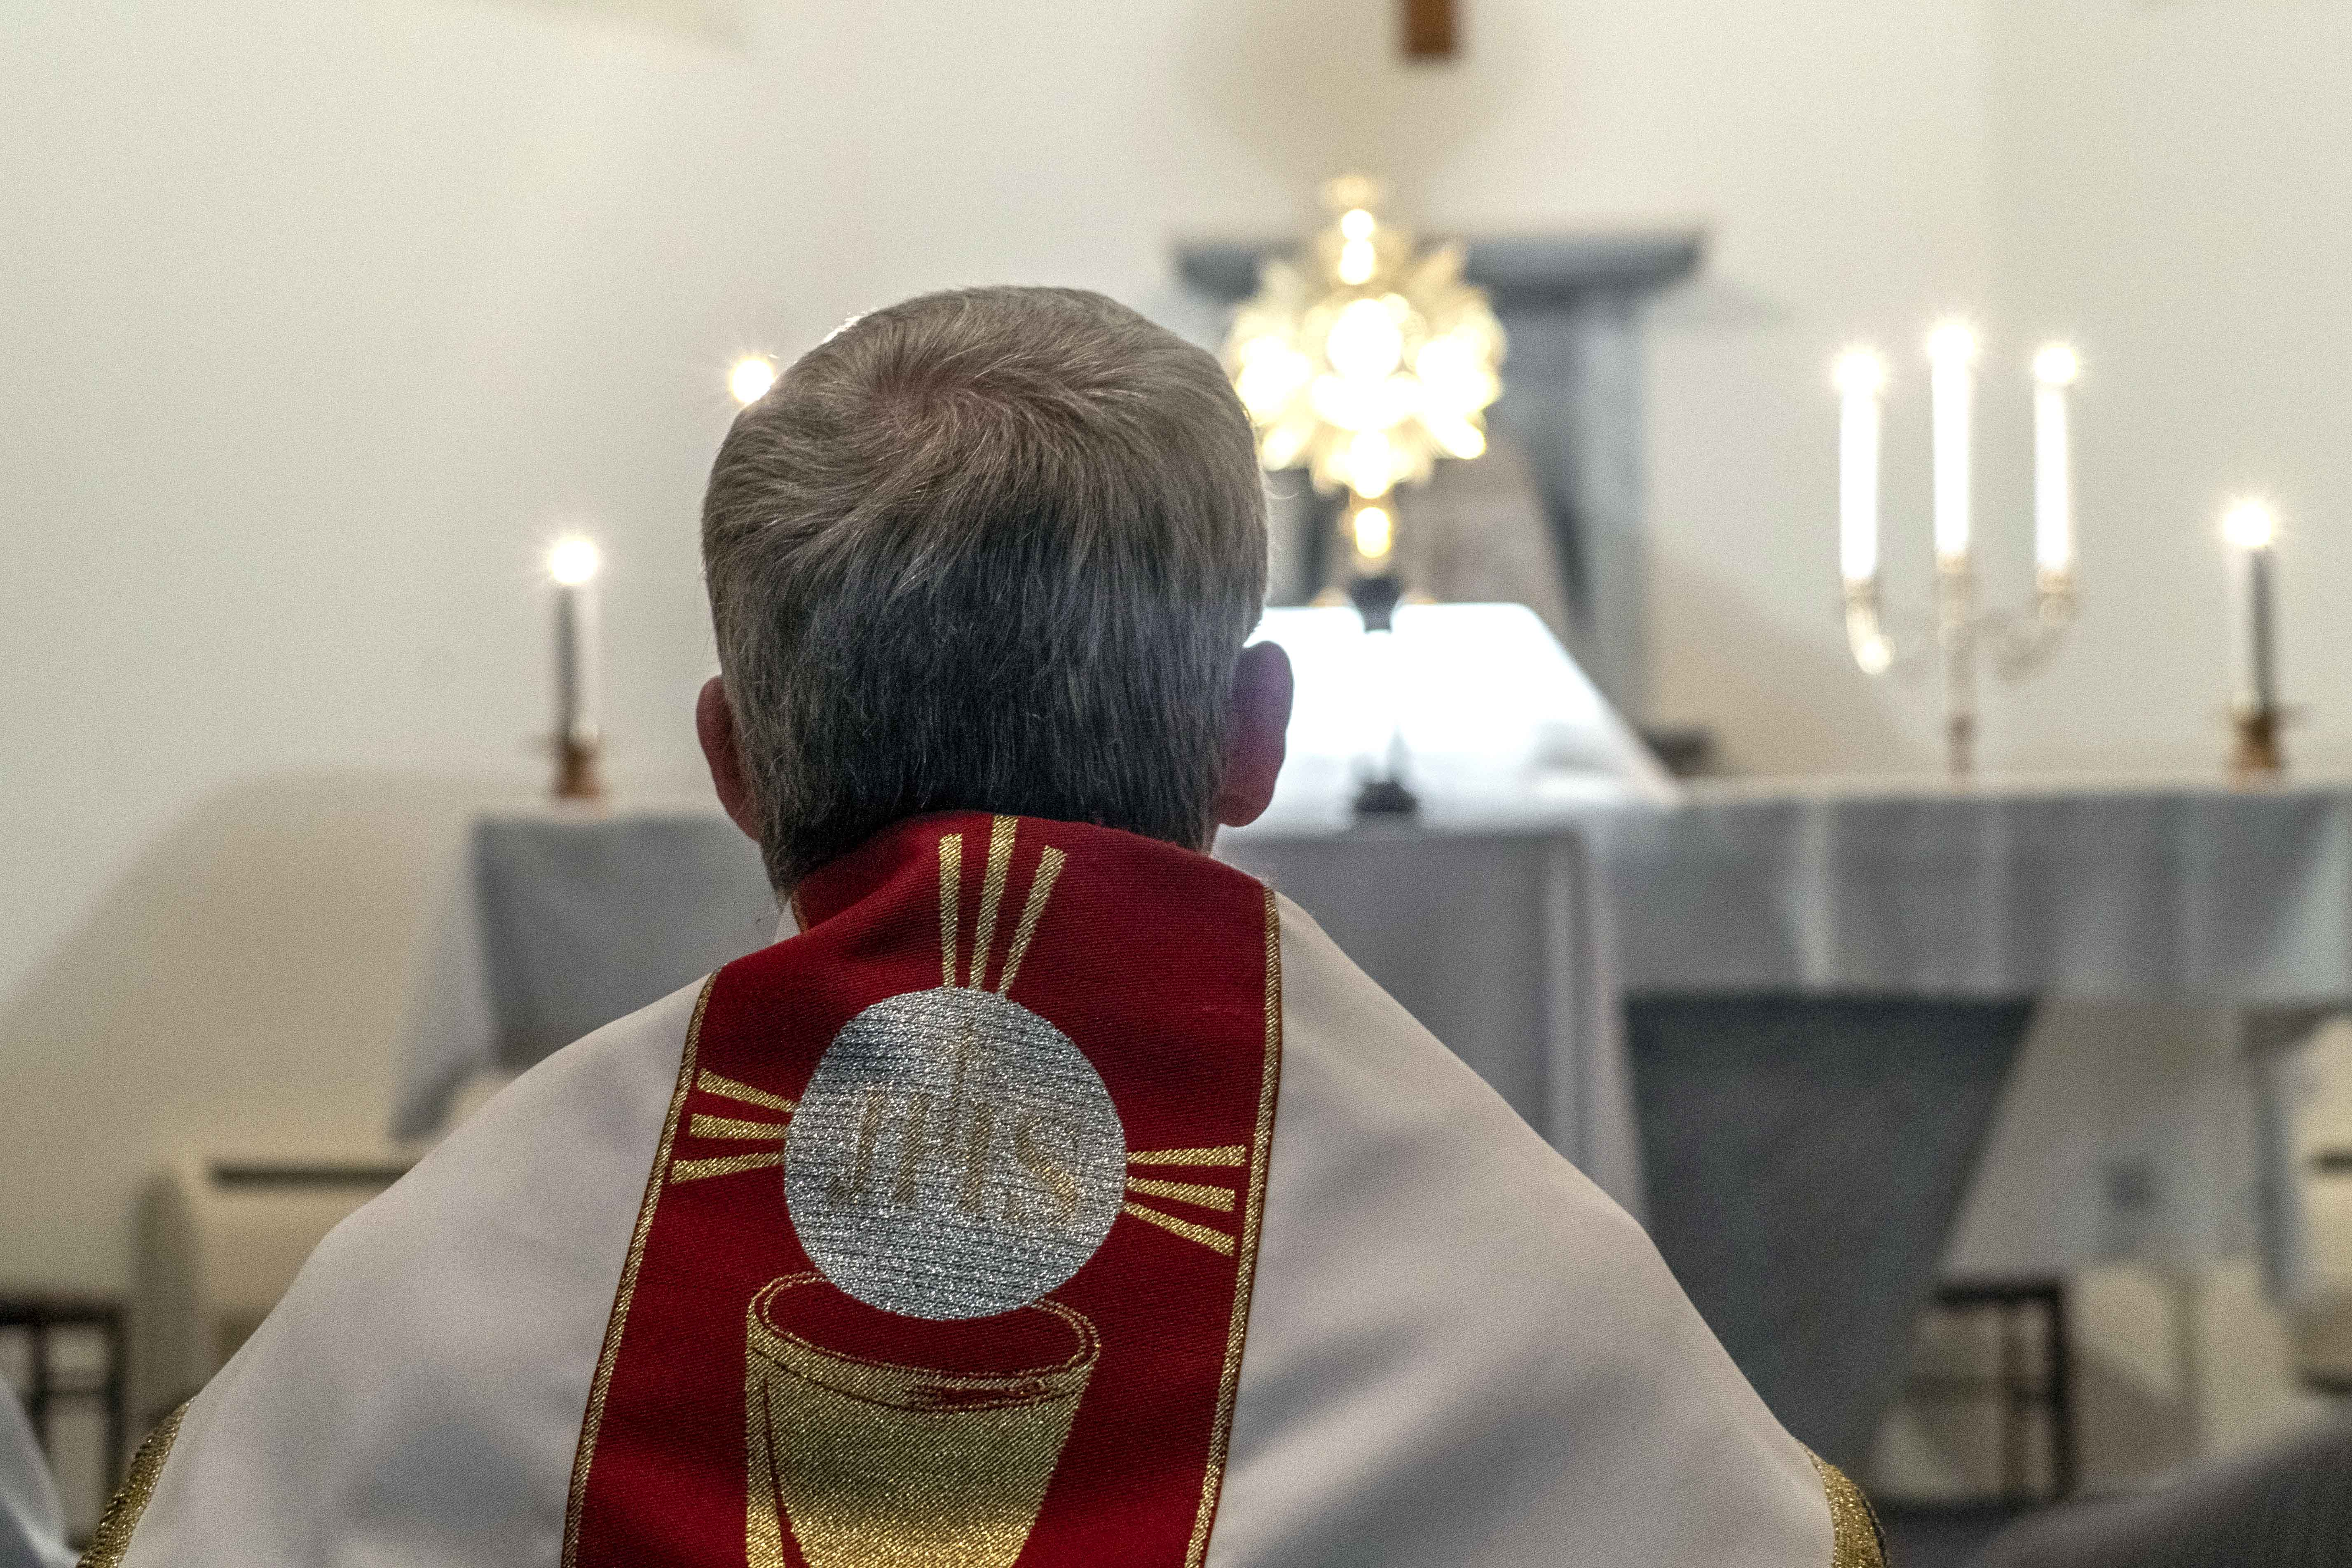 Archbishop Timothy Costelloe SDB led Eucharistic Adoration as part of National Vocations Awareness Week across Australia on 7 August. Photo: Josh Low.